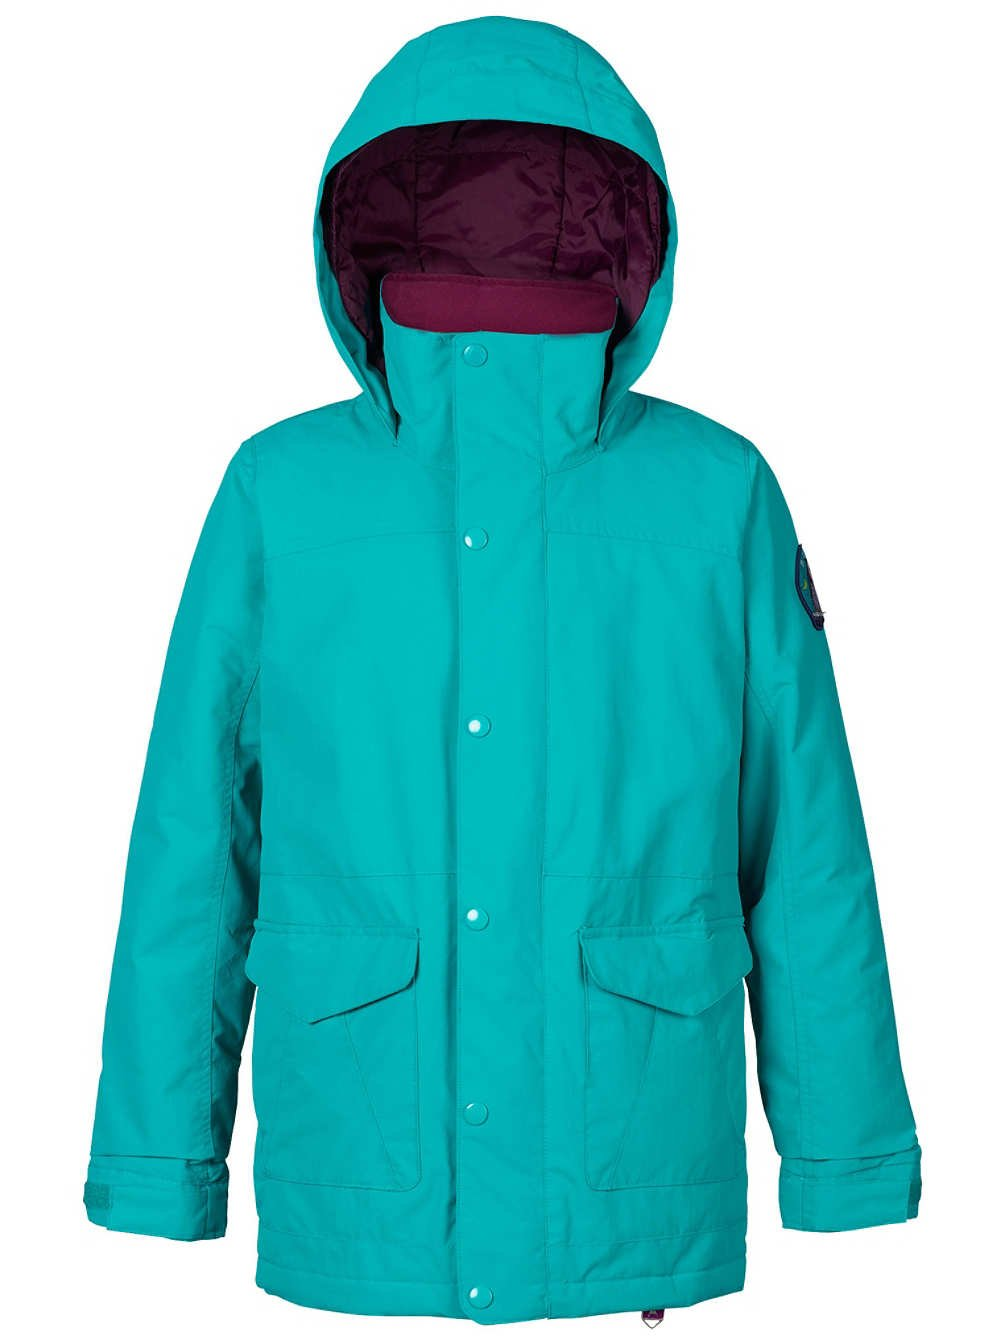 Burton Girls Youth Elstart Snow Jacket Everglade Size Small